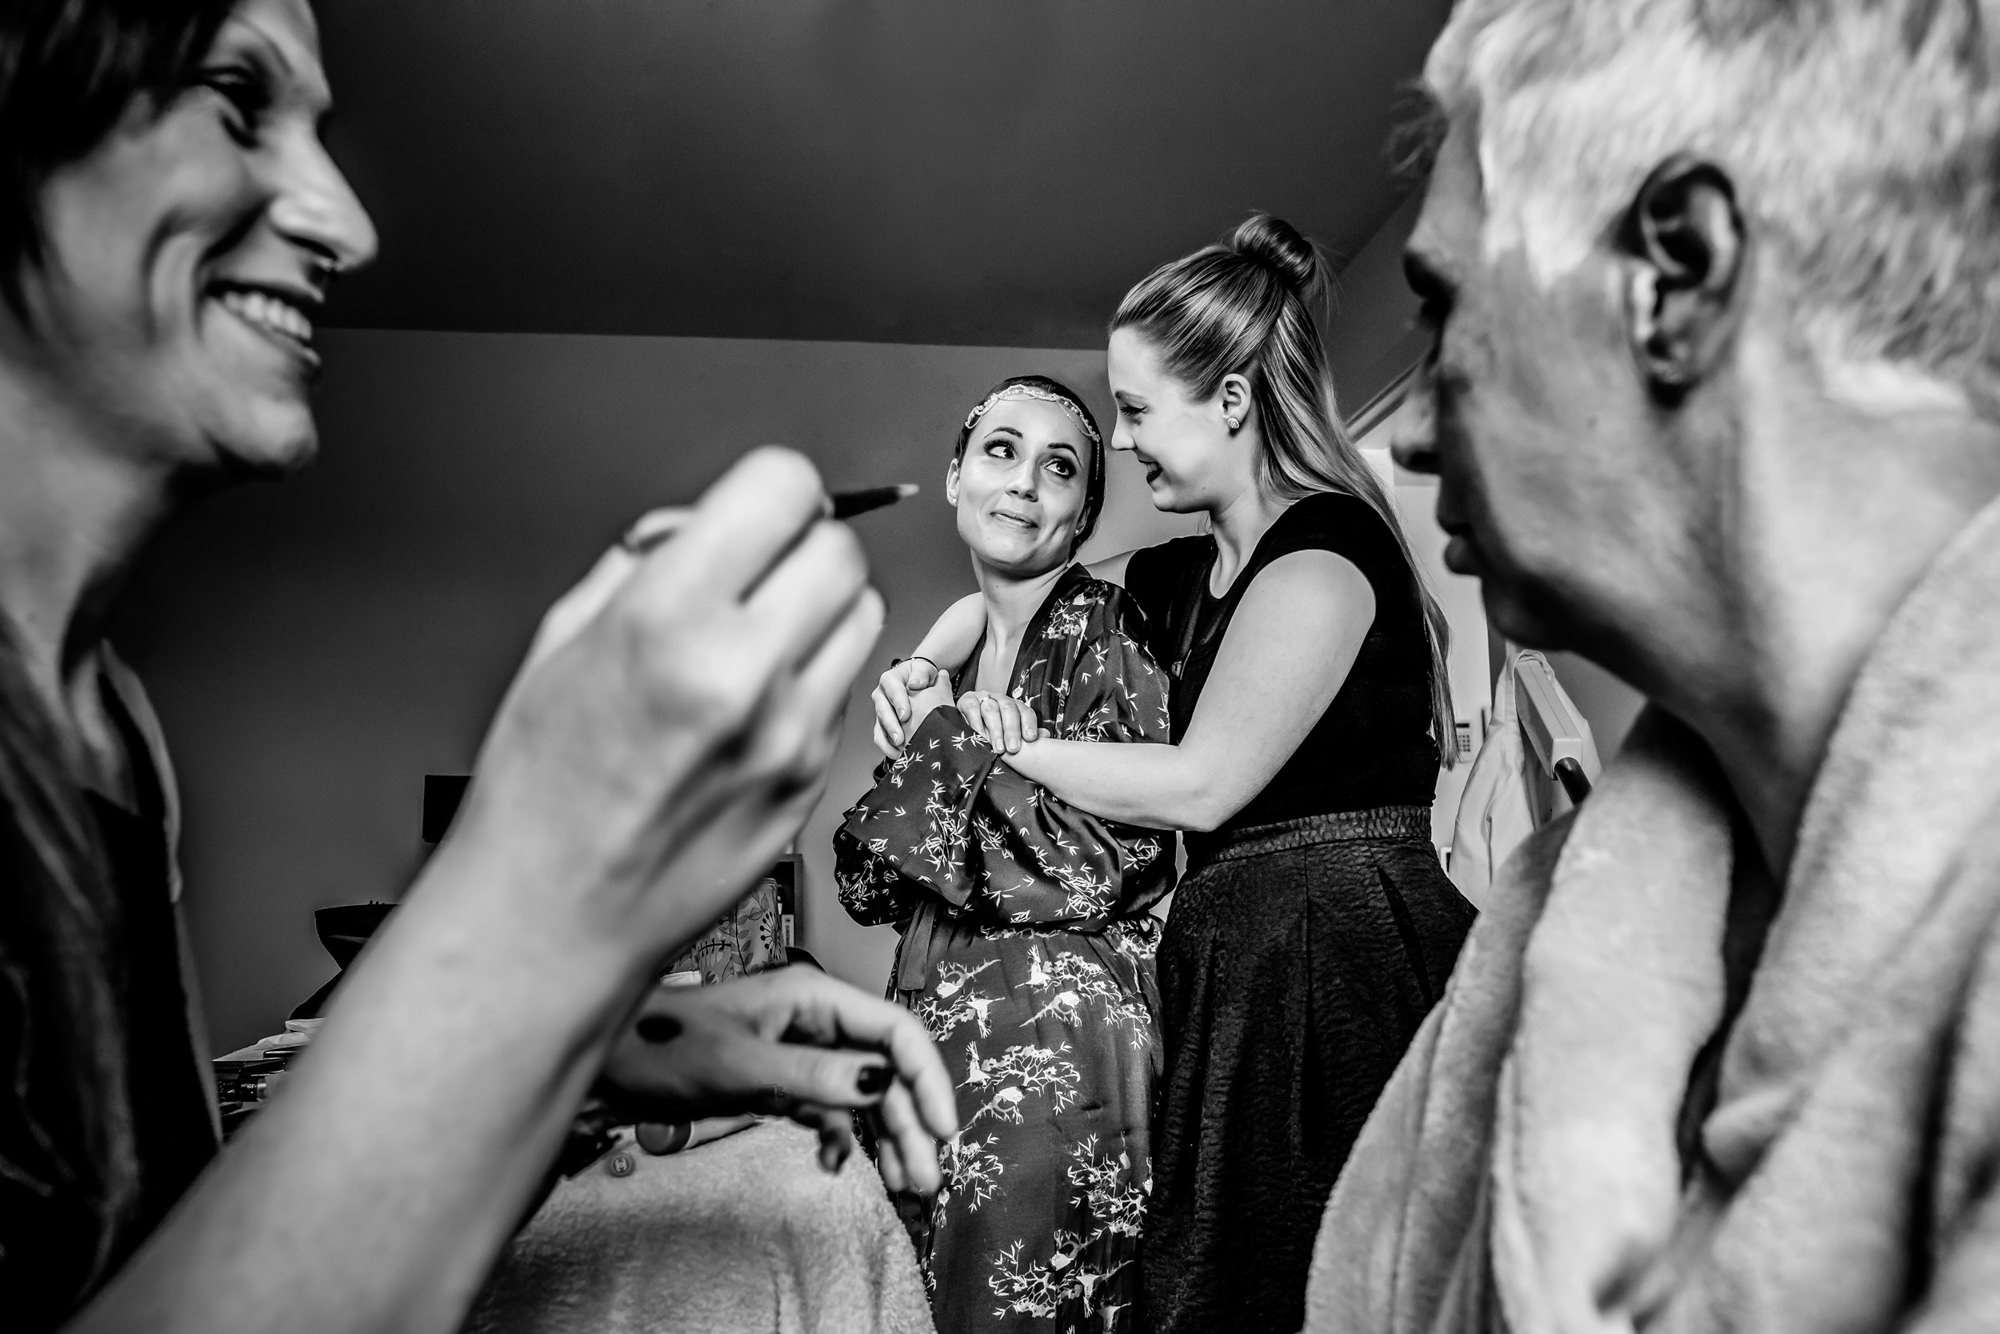 Friend hugs bride while getting ready  - photo by Phillipe Swiggers